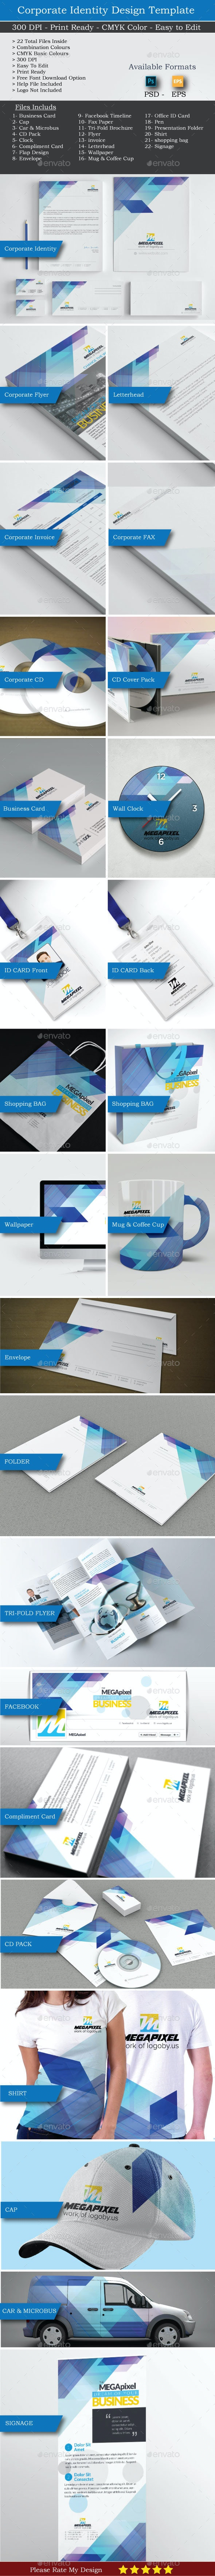 Corporate Identity Set-1 - Stationery Print Templates